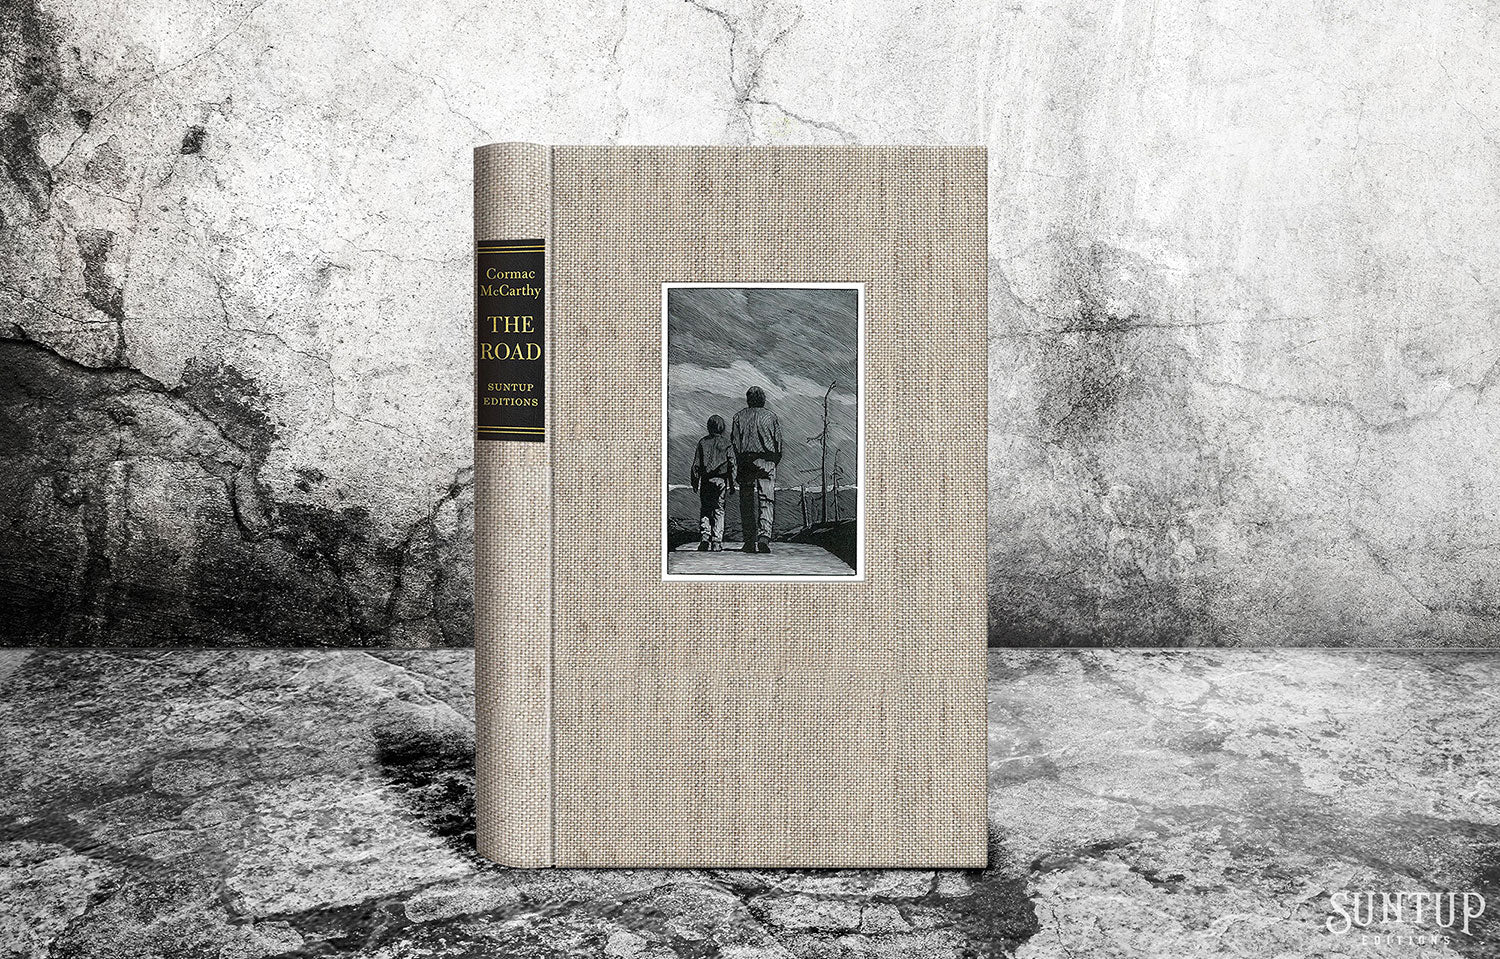 The Road by Cormac McCarthy - Suntup Editions Limited Edition